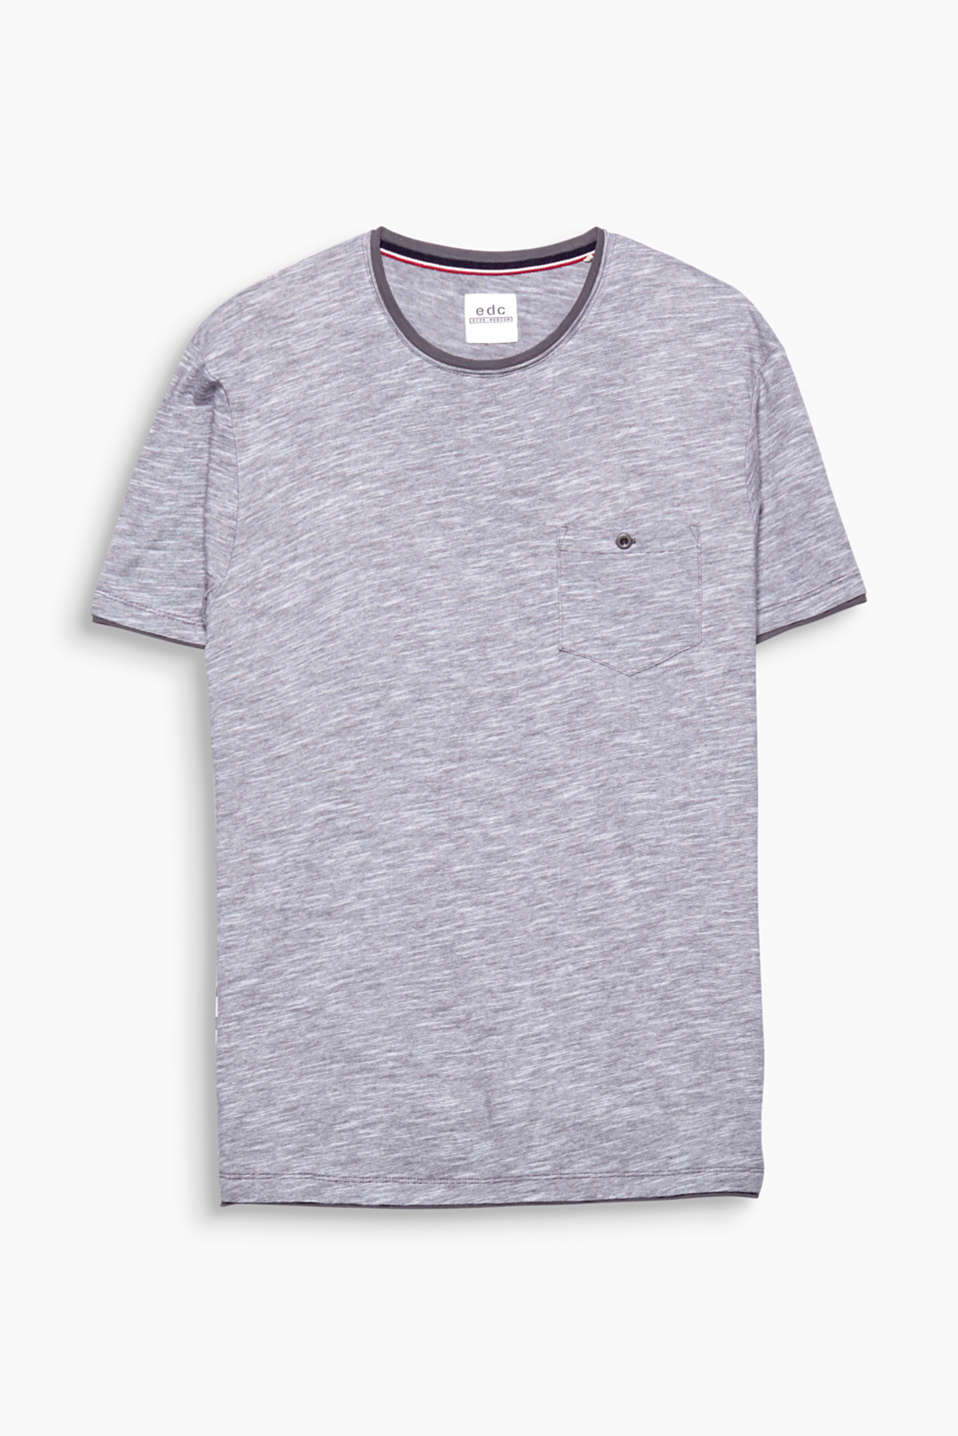 Your urban essential thanks to the cool layered look: 100% cotton T-shirt with melange stripes.